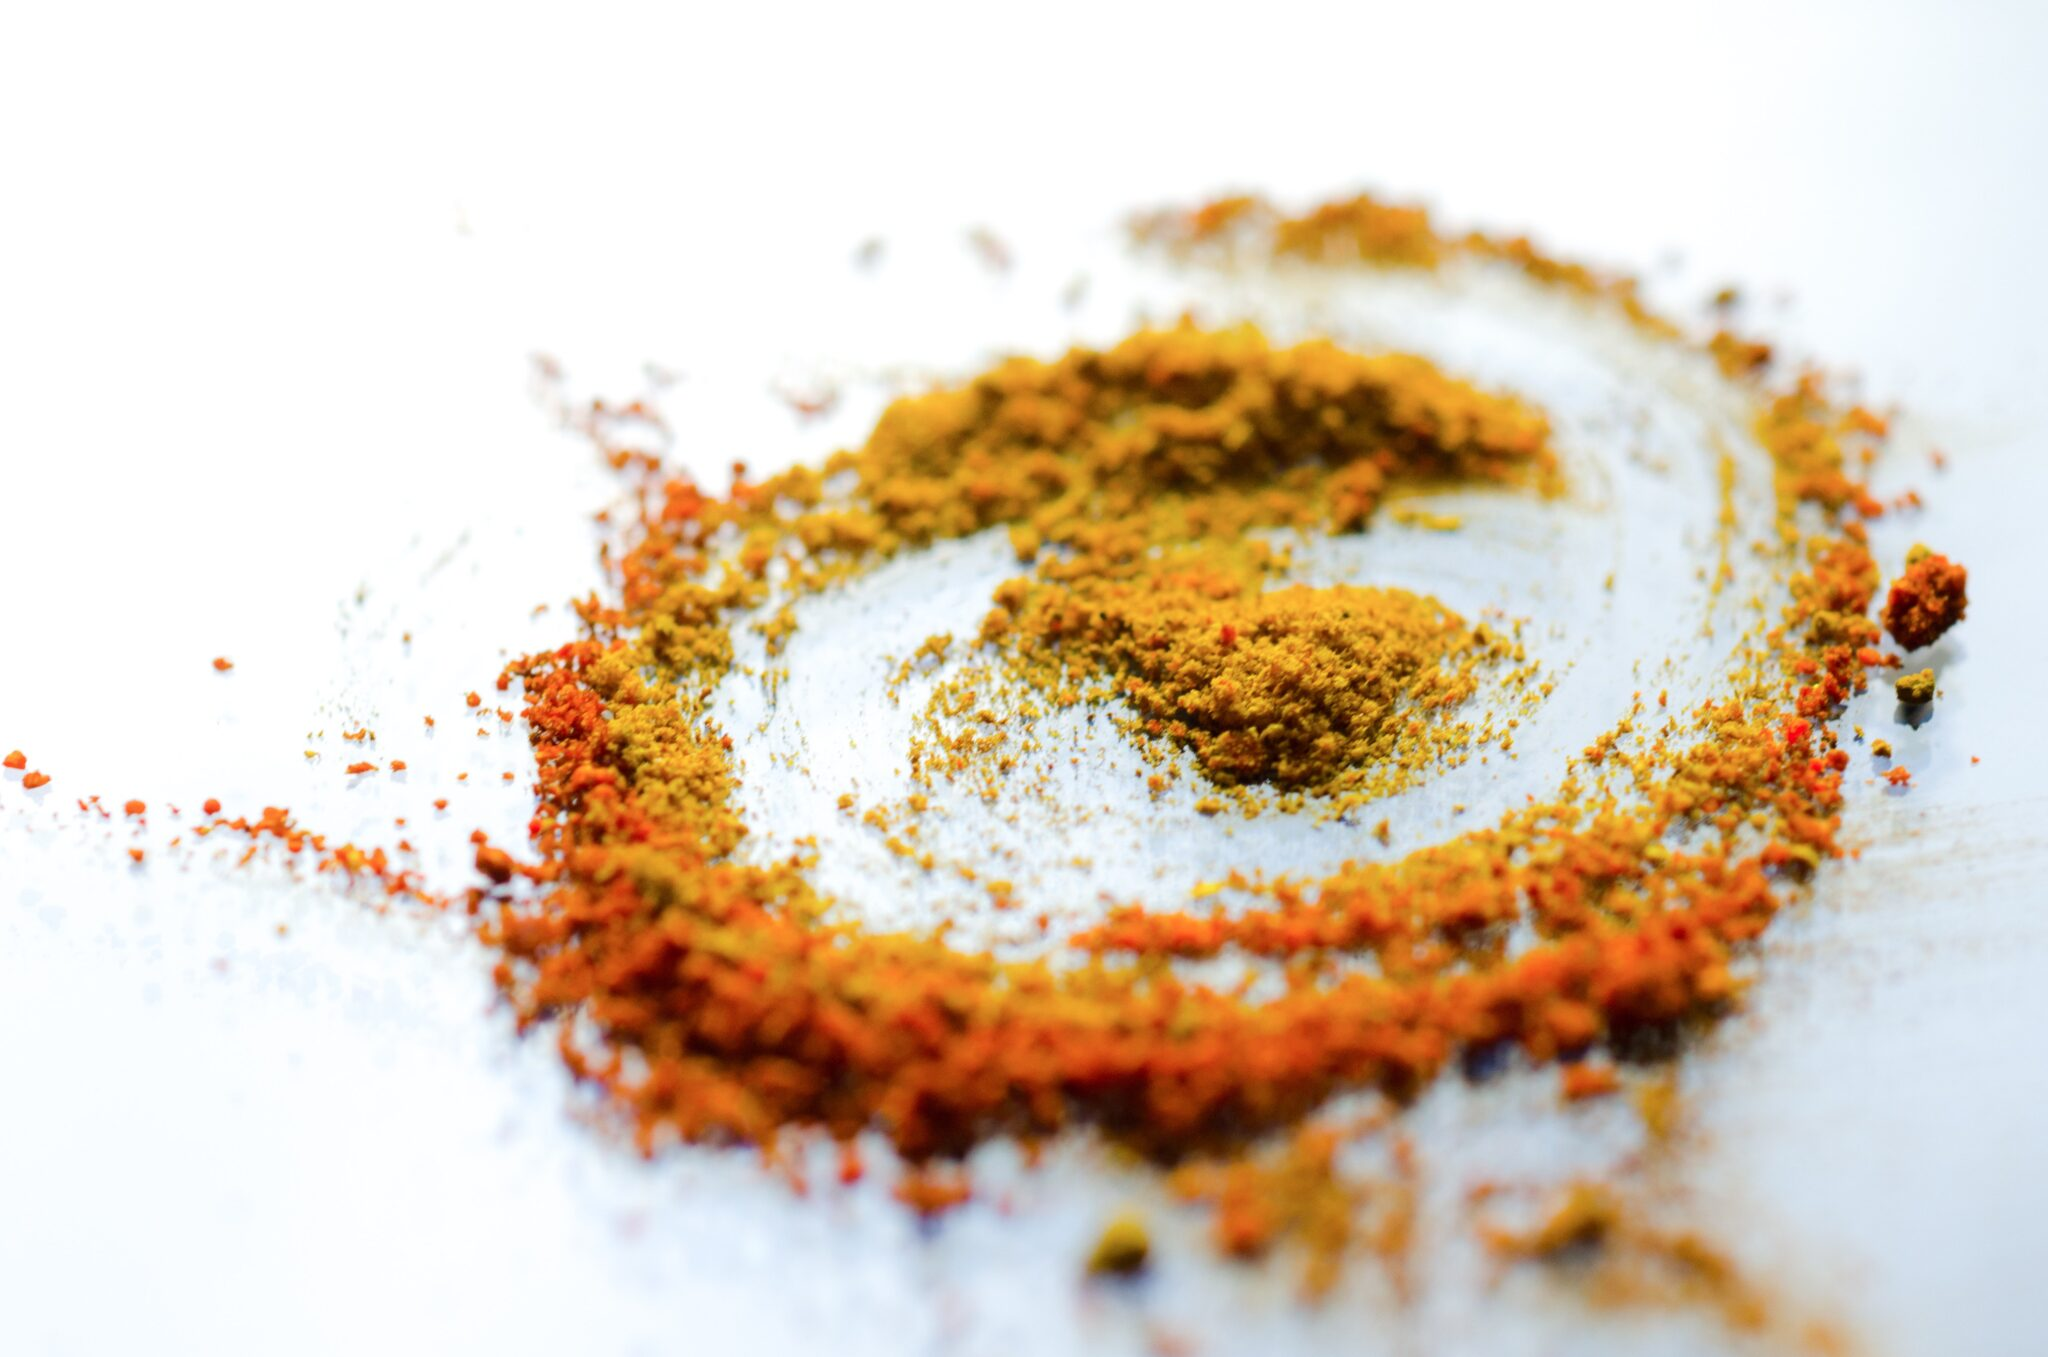 Swirl of spices, ingredients for skincare recipes